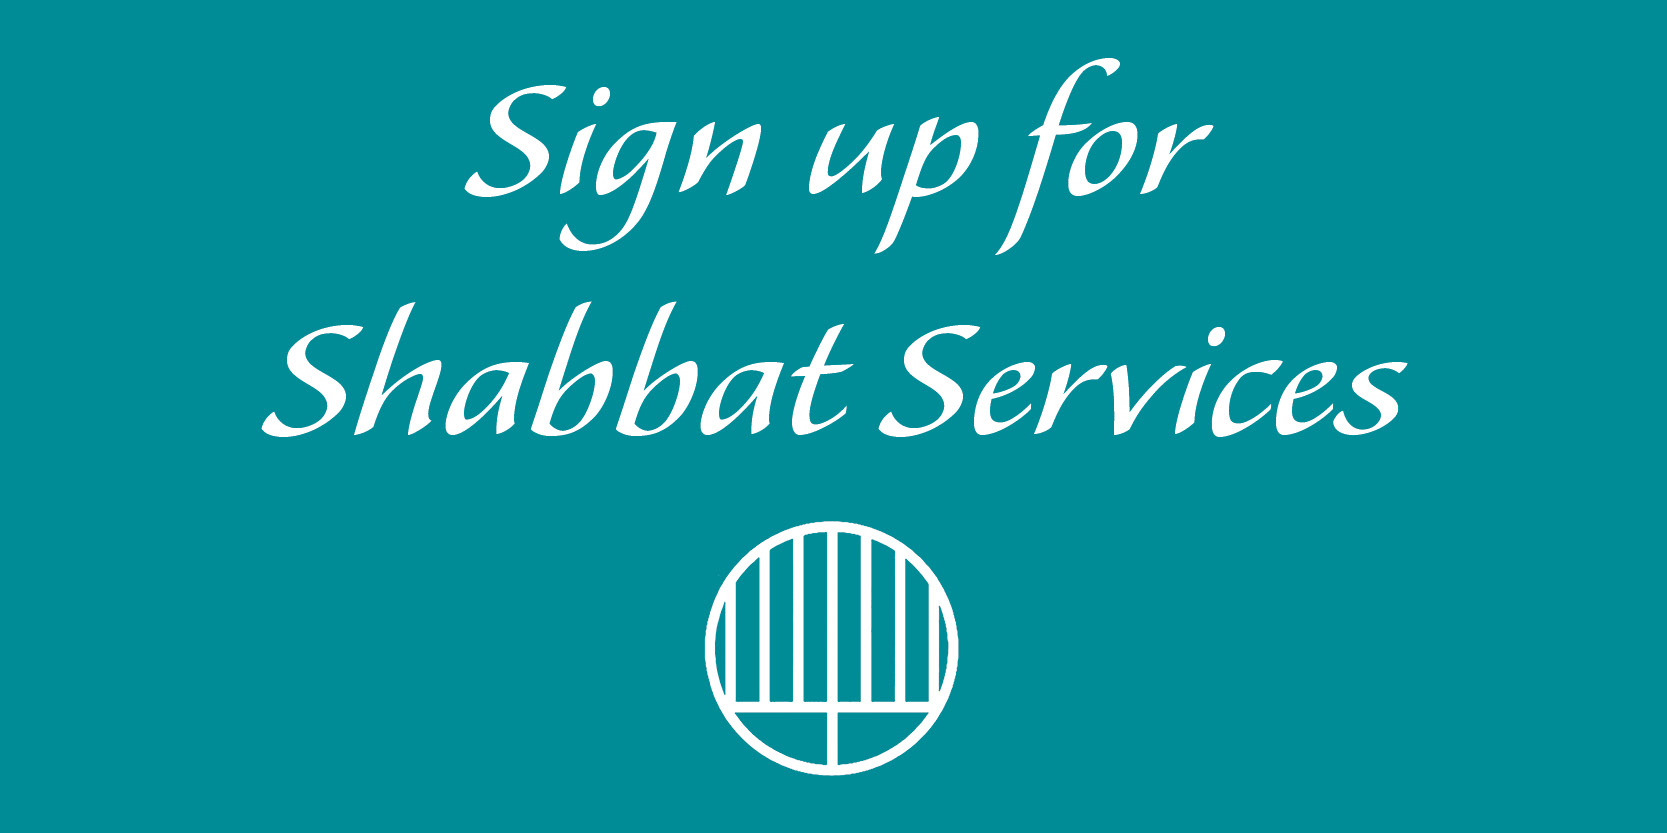 """<a href=""""https://www.signupgenius.com/go/20f0d4baaa72da0f58-shabbat1""""                                     target=""""_blank"""">                                                                 <span class=""""slider_title"""">                                     Welcome back! Sign up for in-person Shabbat Services at TBZ!                                </span>                                                                 </a>                                                                                                                                                                                       <span class=""""slider_description"""">Please include each individual who will be attending. Each slot is for one person.  Please add each child who will attend over the age of 2 years. Should your plans change and you cannot attend,  please make sure to remove your reservation to free your spot for someone else.</span>                                                                                     <a href=""""https://www.signupgenius.com/go/20f0d4baaa72da0f58-shabbat1"""" class=""""slider_link""""                             target=""""_blank"""">                             Click here                            </a>"""